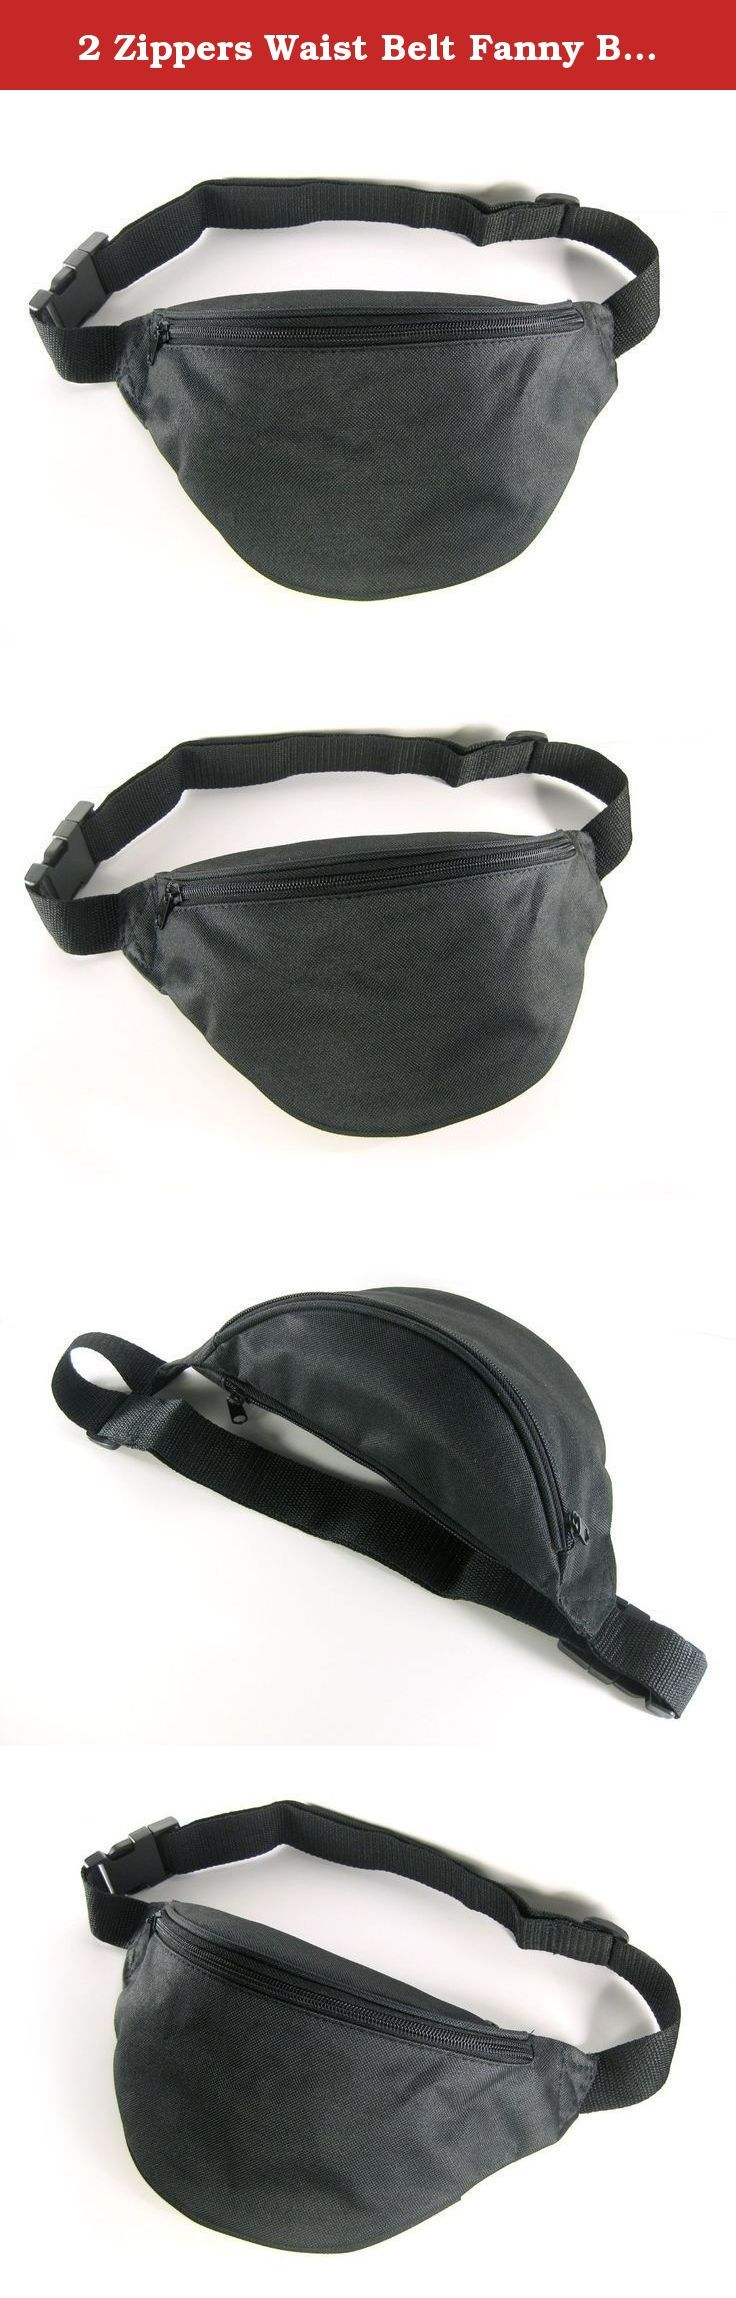 2 Zippers Waist Belt Fanny Bag Unisex Men Women Sport Black Blue Red NEW (Black). Keep your personal items safe while still being able to access them easily when traveling abroad, running a simple errand, during a yard sale or even taking a bike ride. The waist strap can be freely extended or shorten per your needs.